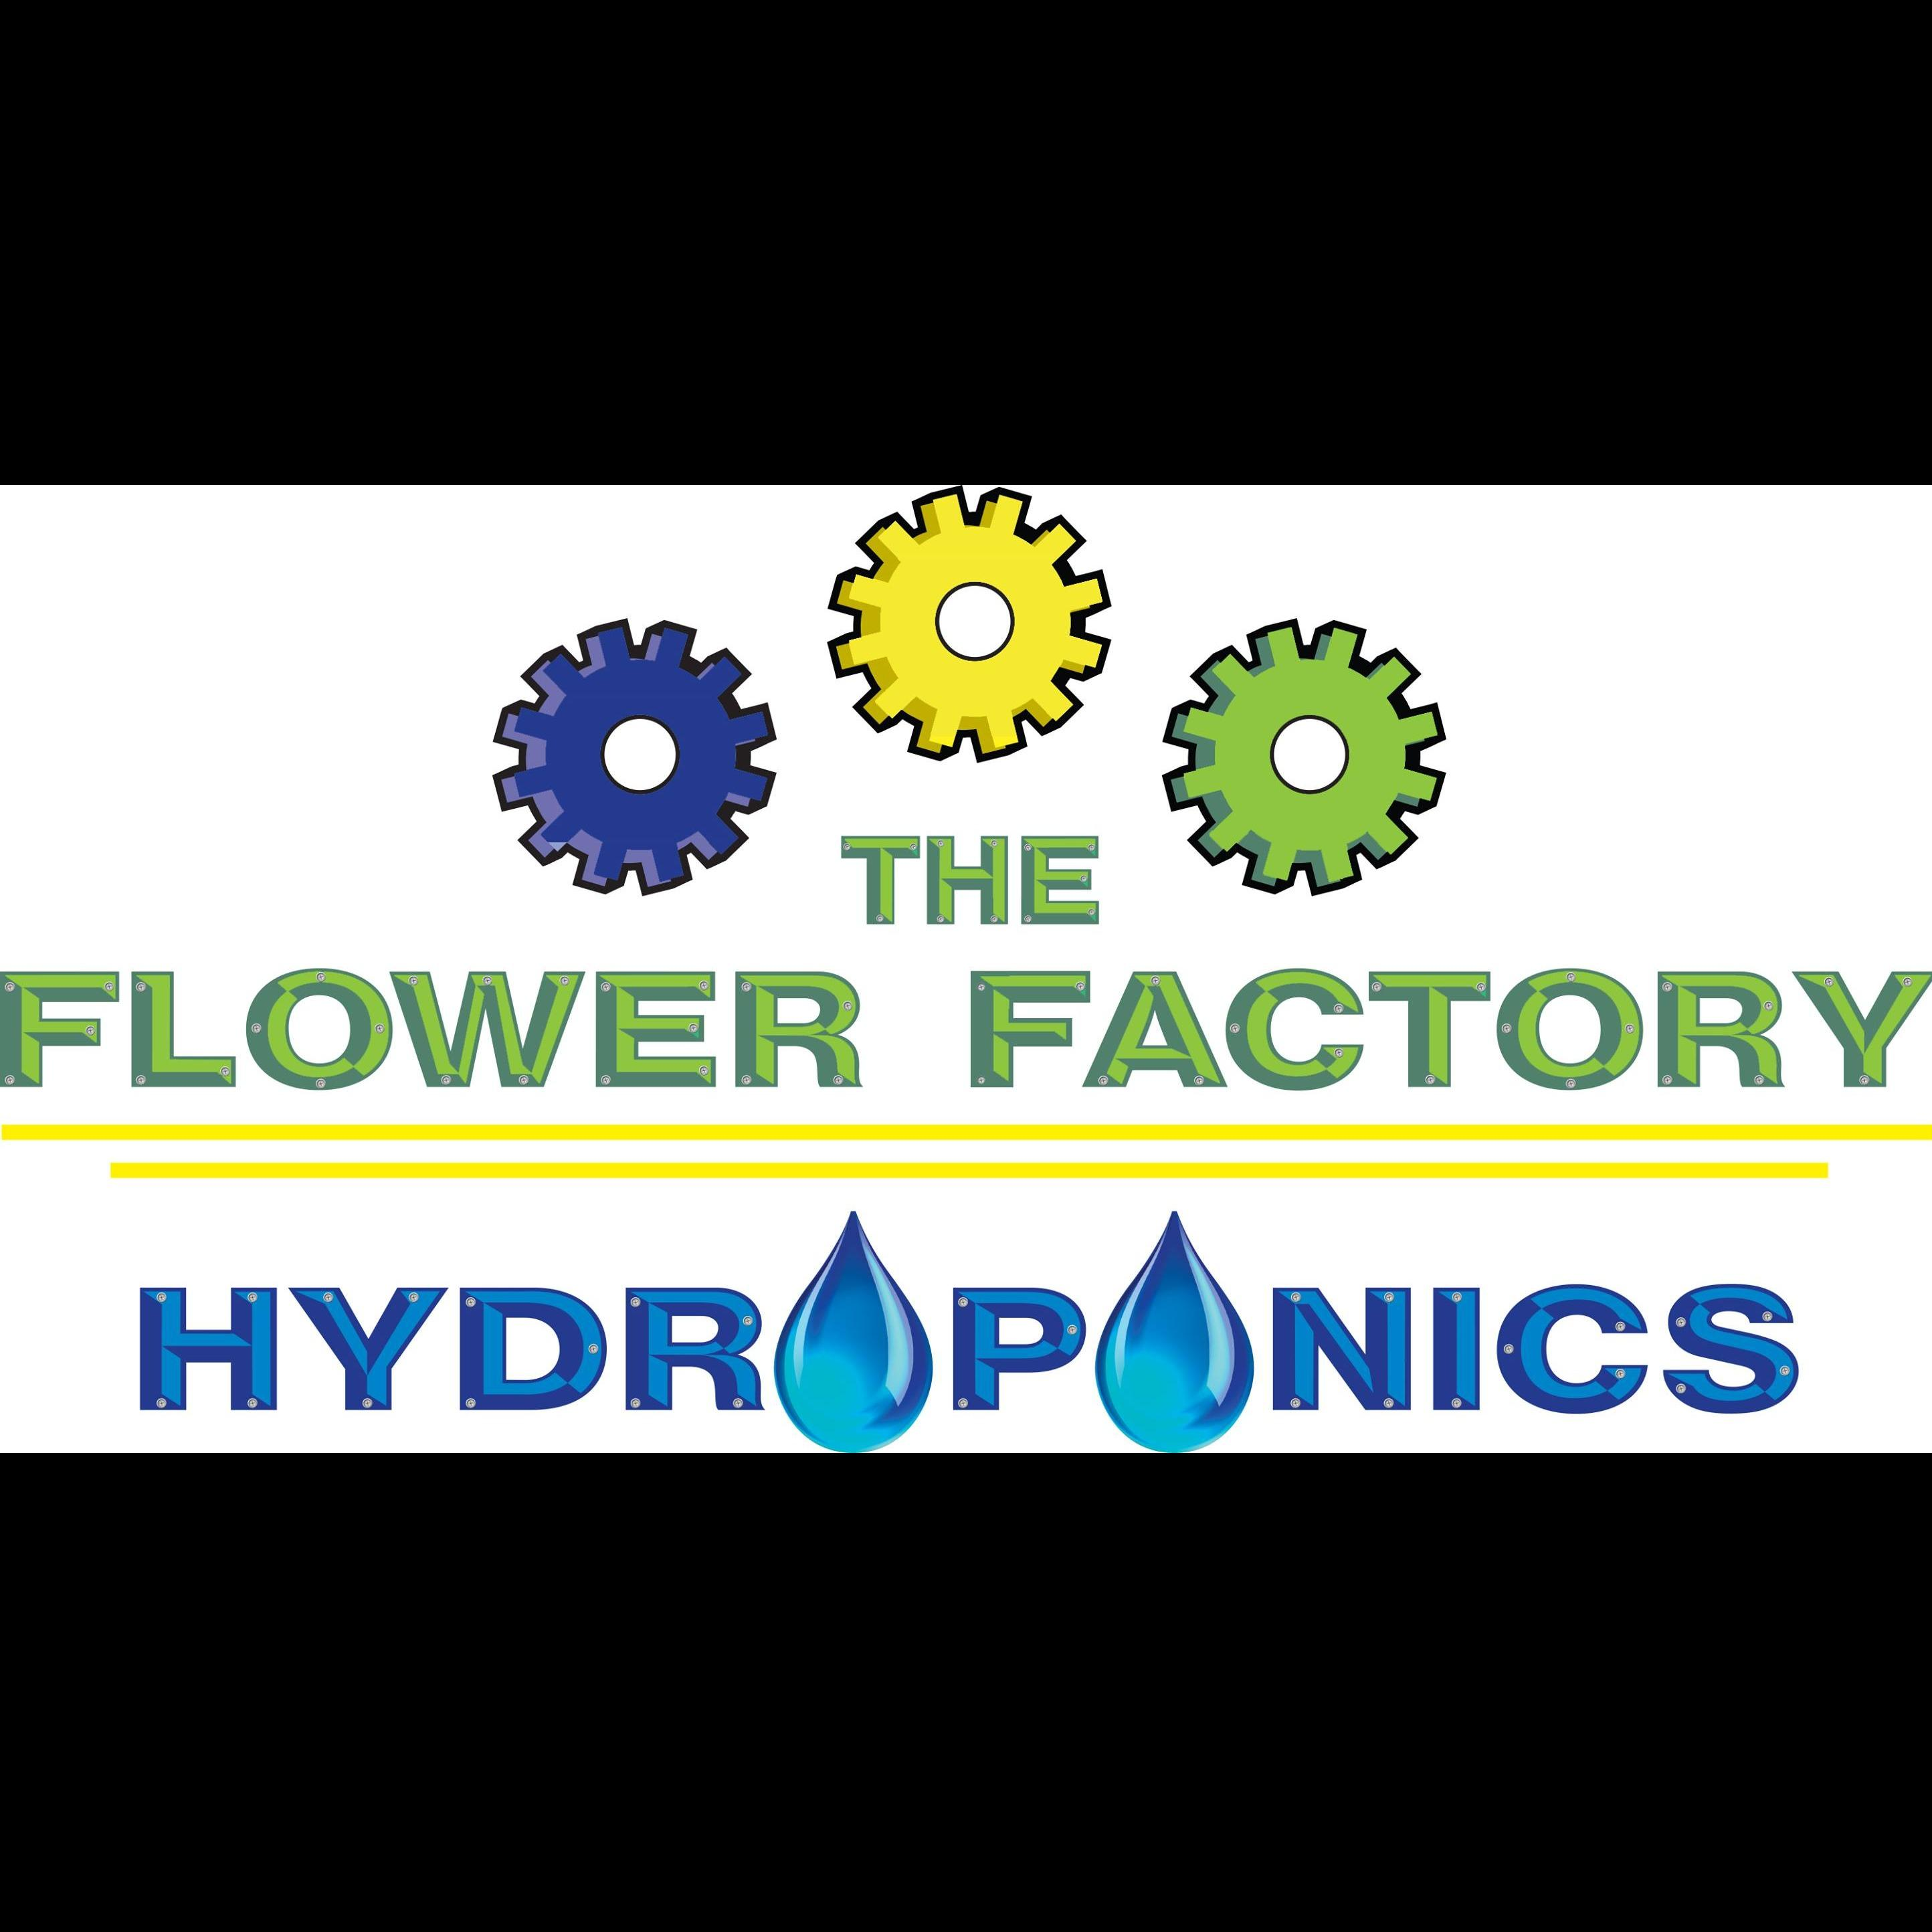 image of Flower Factory Hydroponics